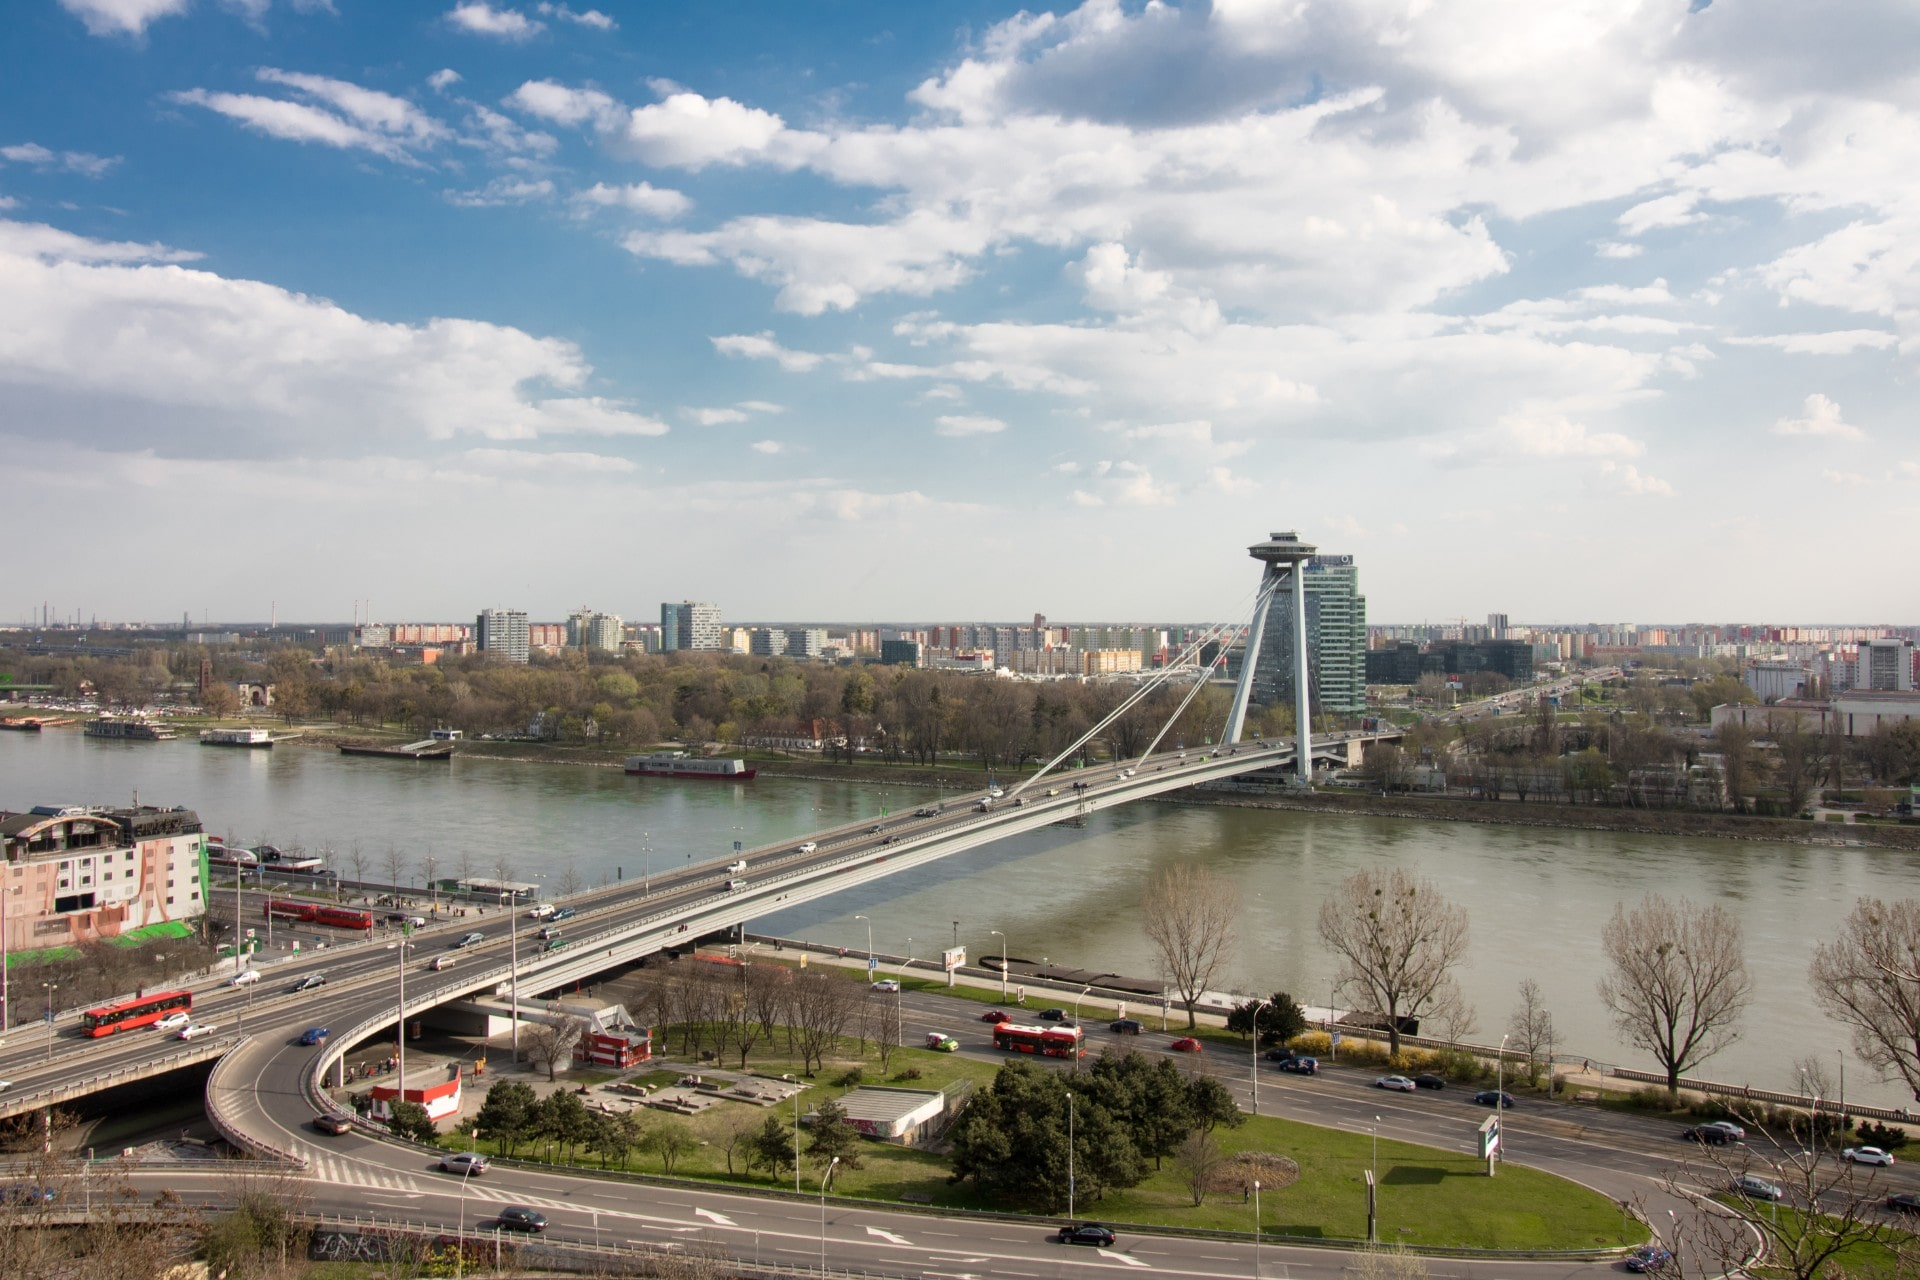 view-from-bratislava-castle-across-to-UFO-observation-deck-on-top-of-a-main-road-running-across-a-bridge-across-the-river-one-day-in-bratislava